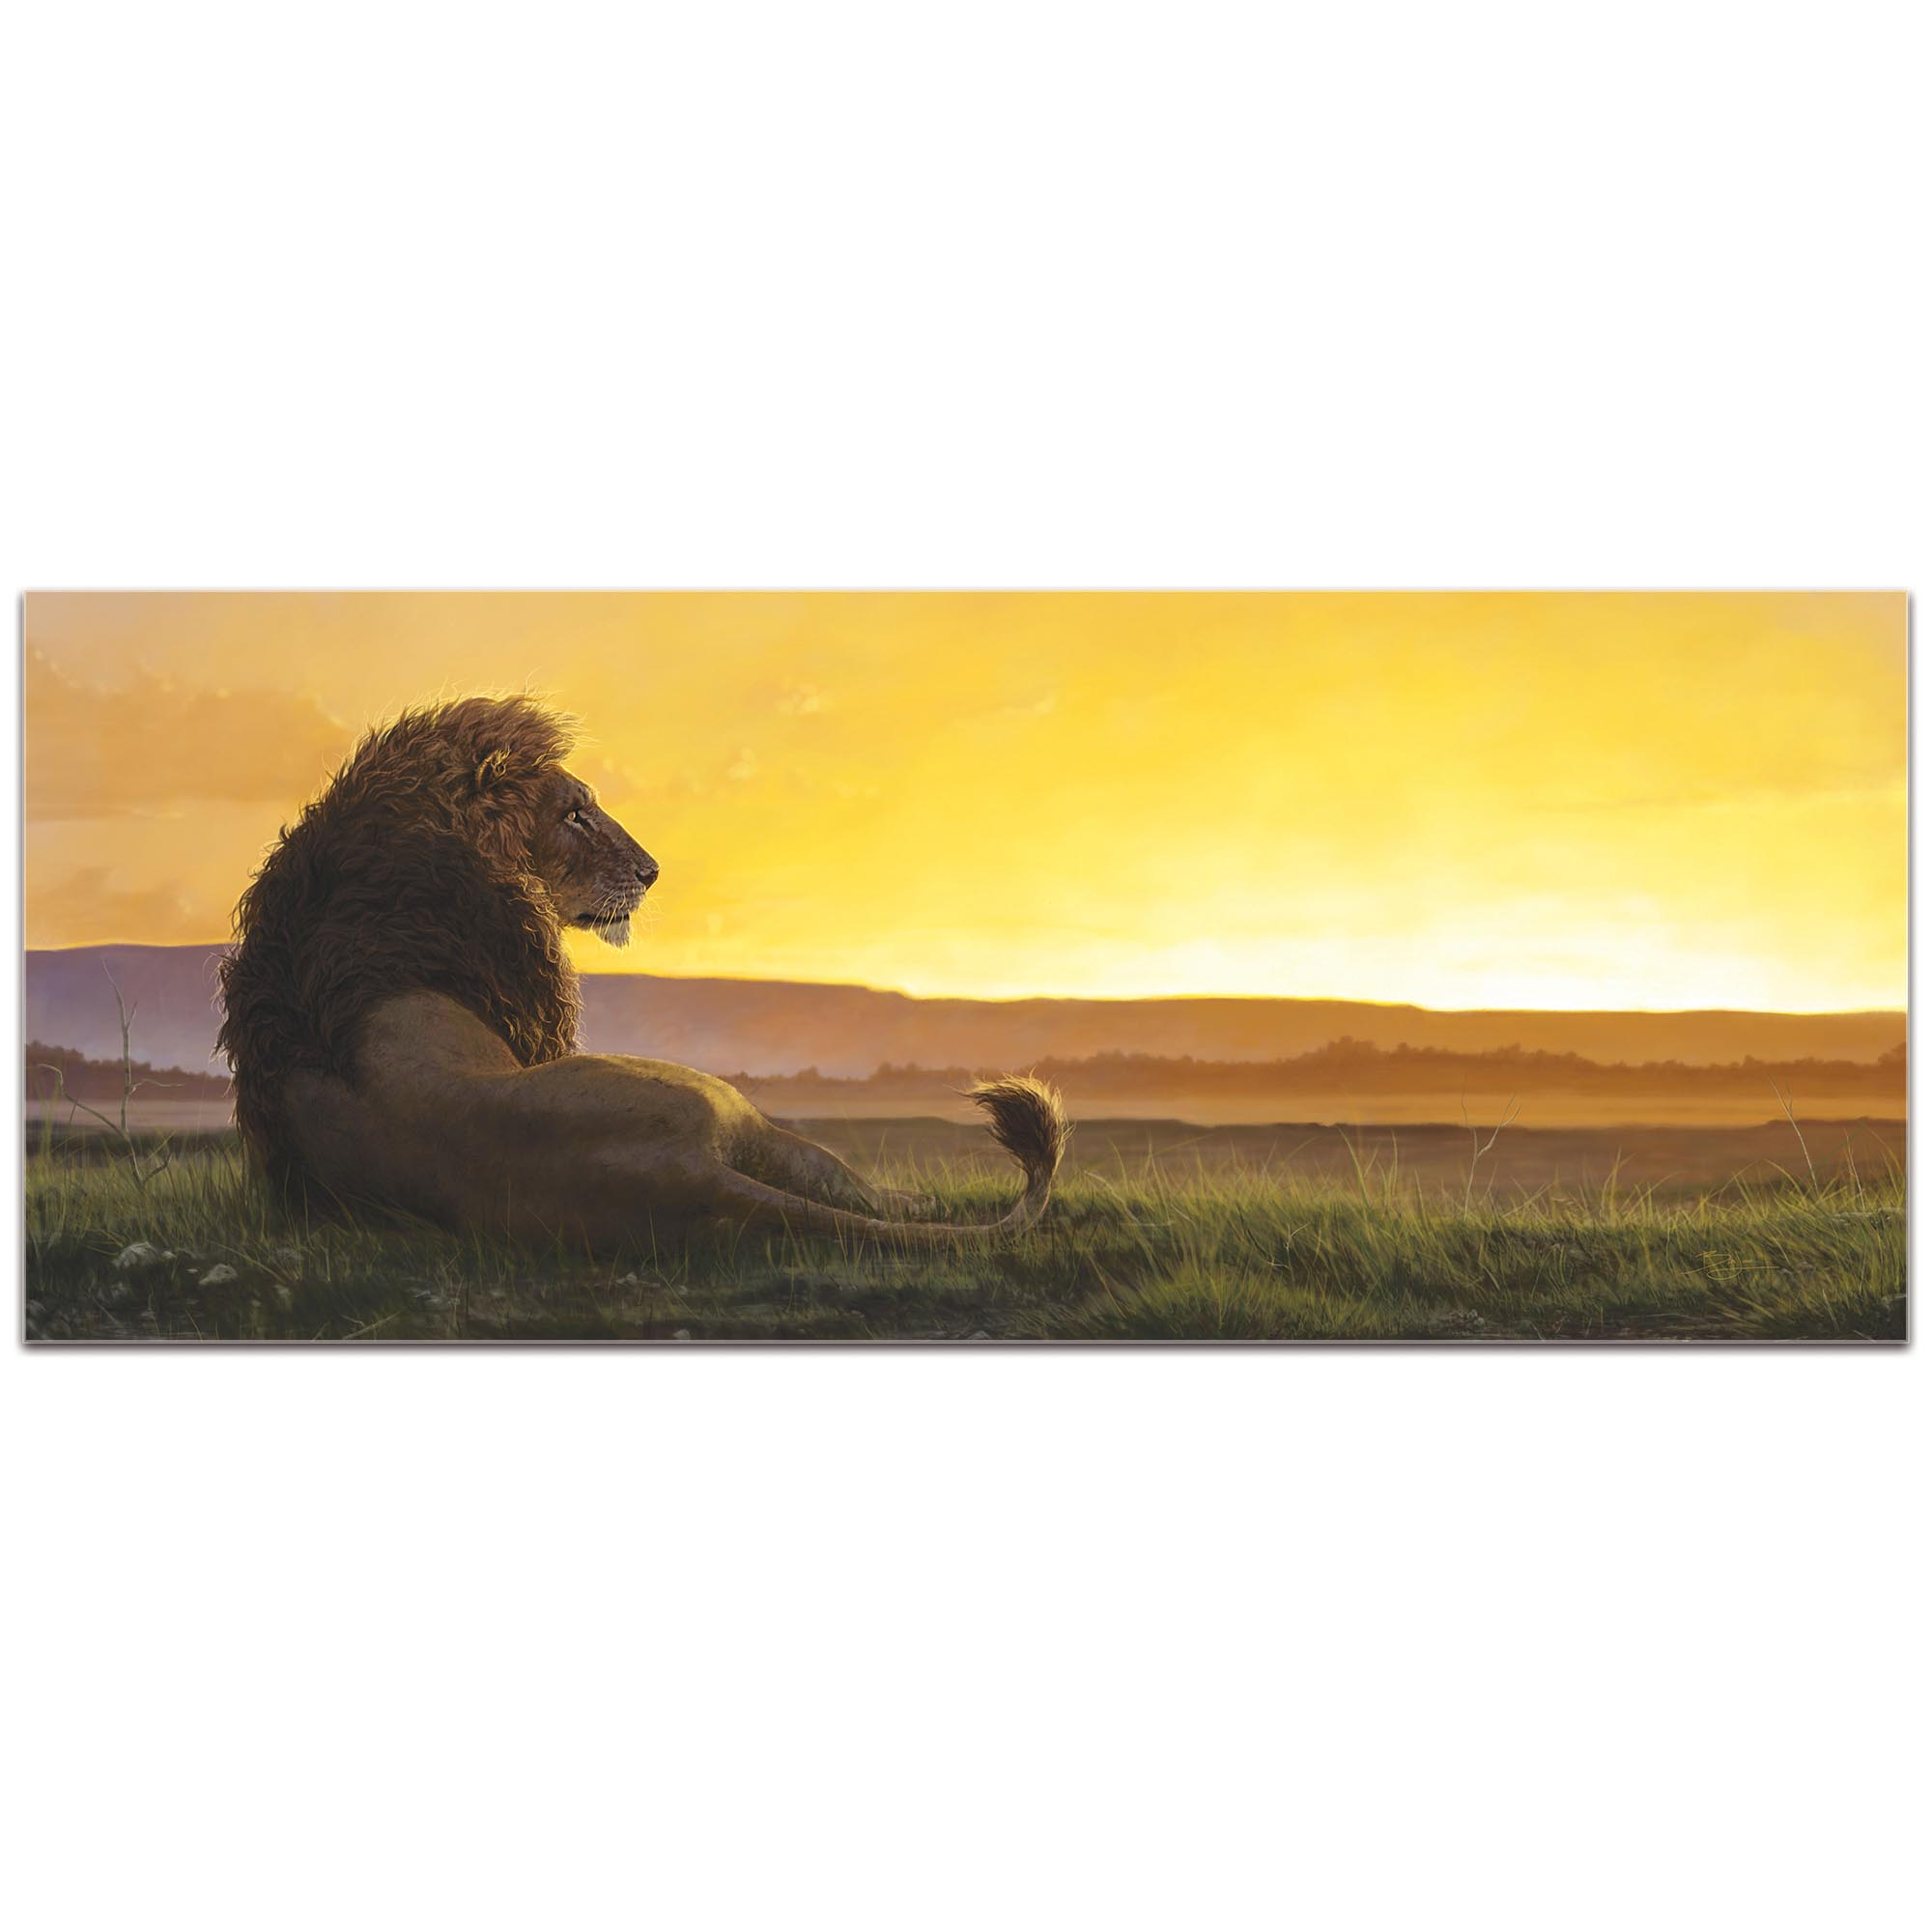 Expressionist Wall Art 'Lion in the Sun' - Wildlife Decor on Metal or Plexiglass - Image 2